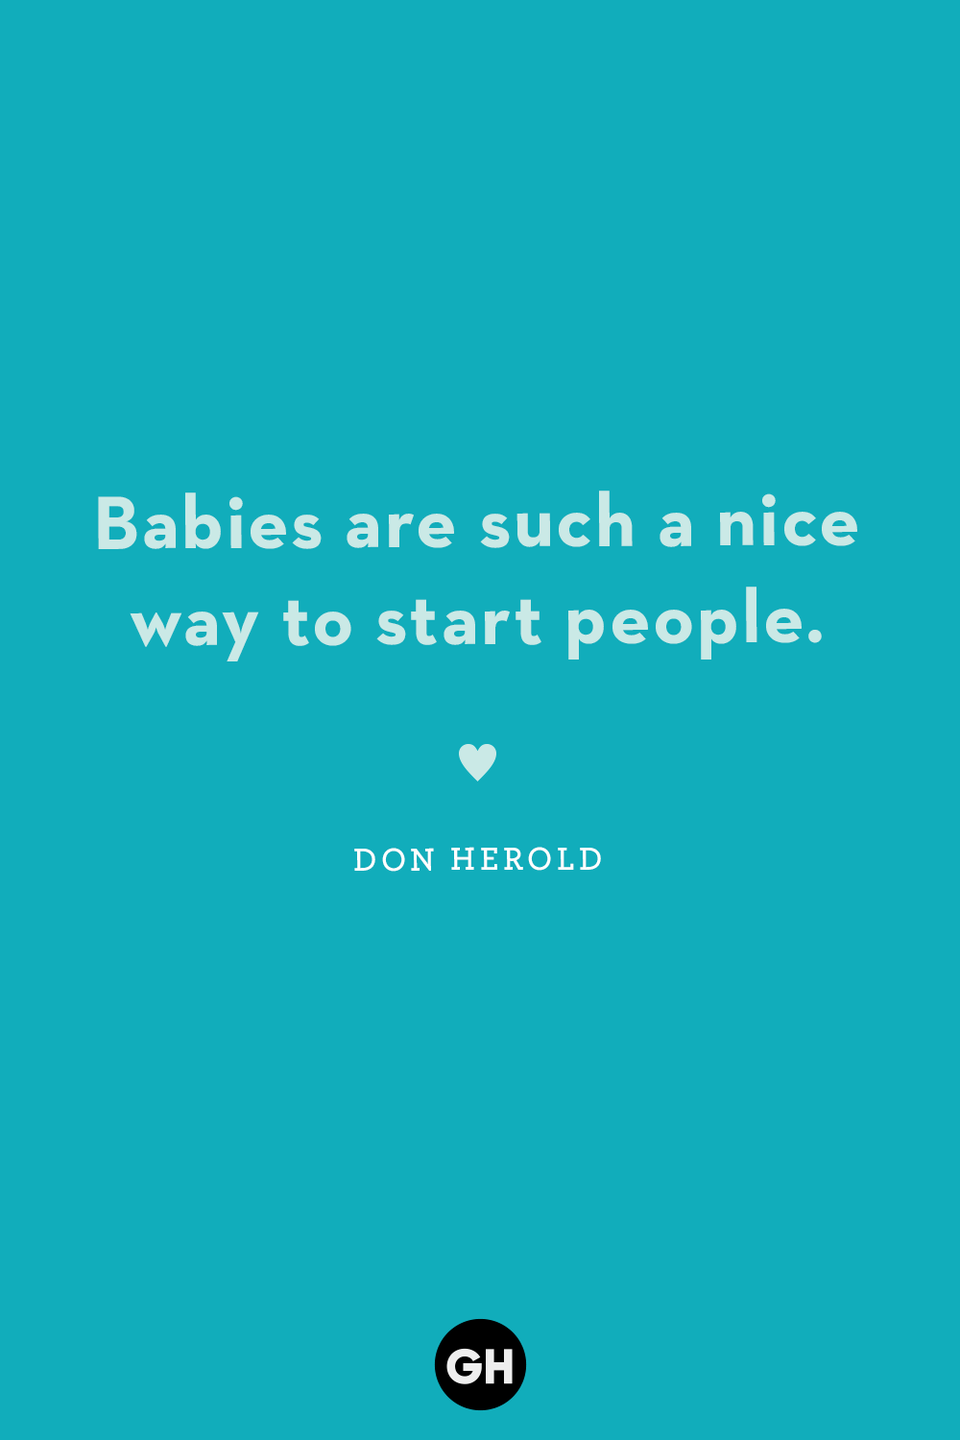 <p>Babies are such a nice way to start people.</p>